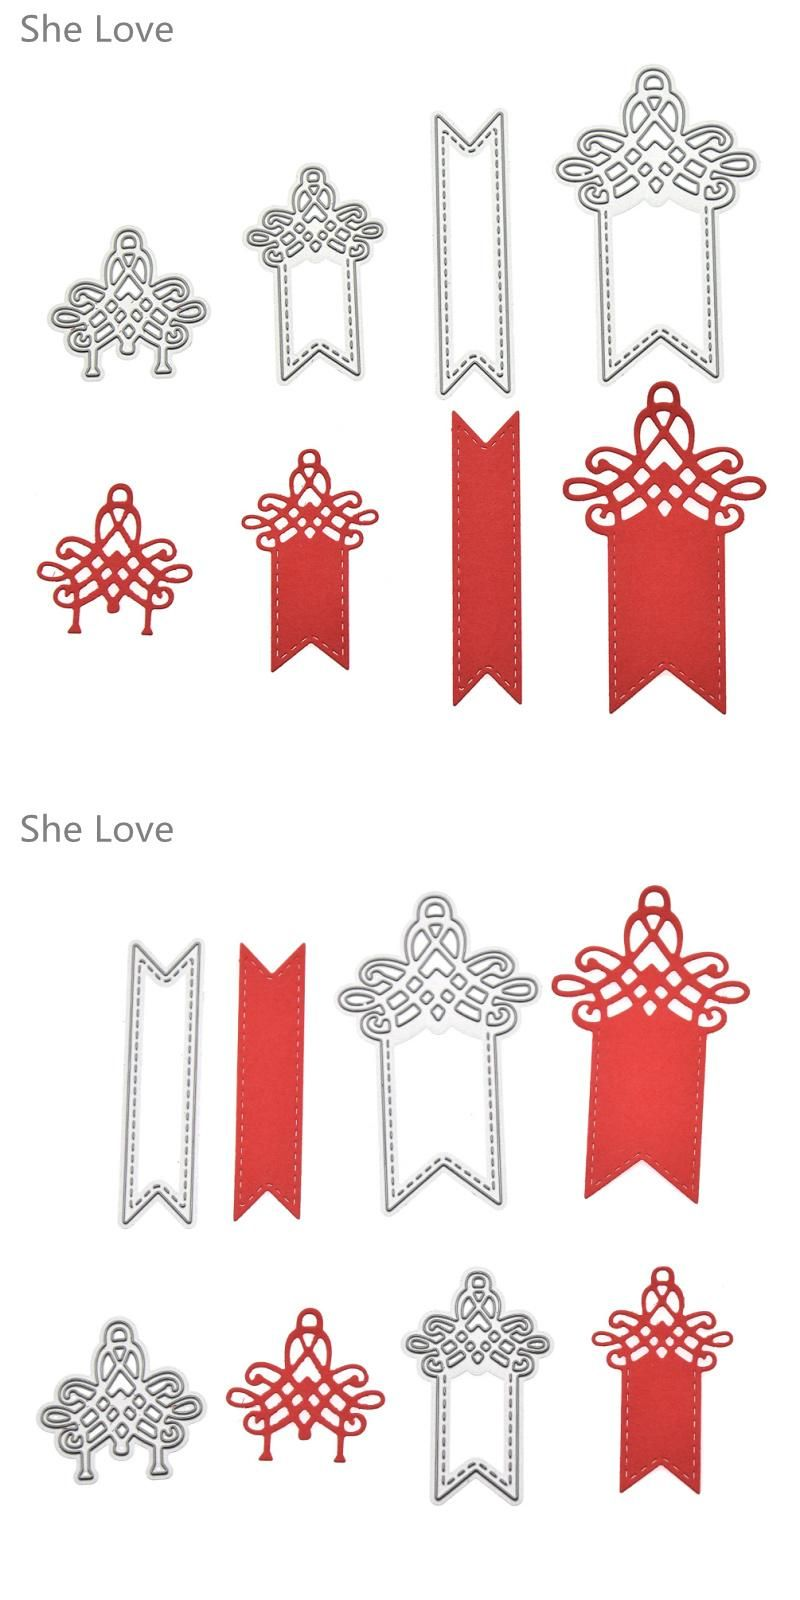 Visit to Buy] She Love 4pcs Label Hangtag Template Metal Cutting ...